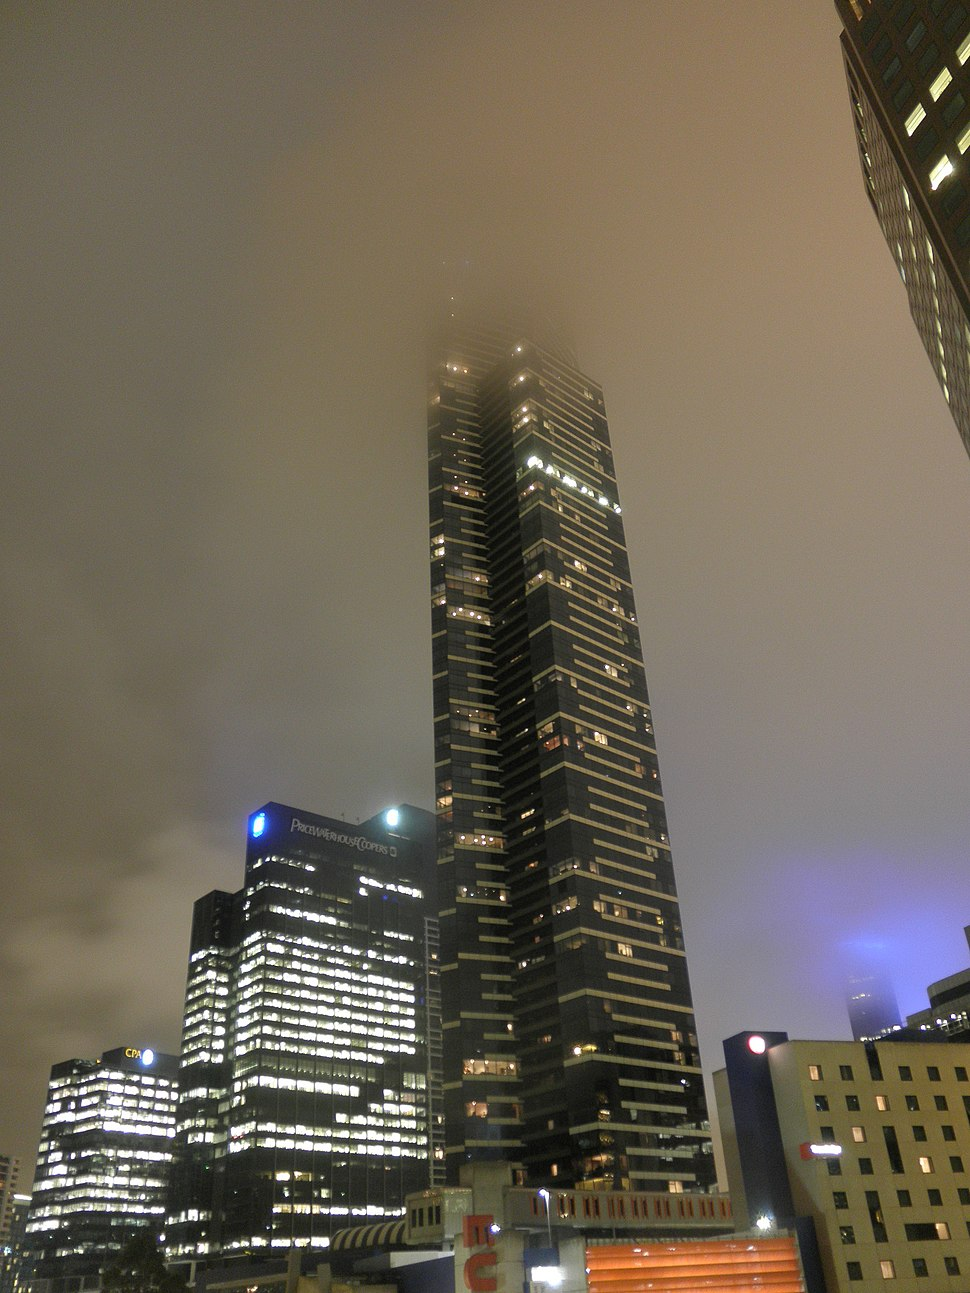 Eureka Tower covered in low clouds at night